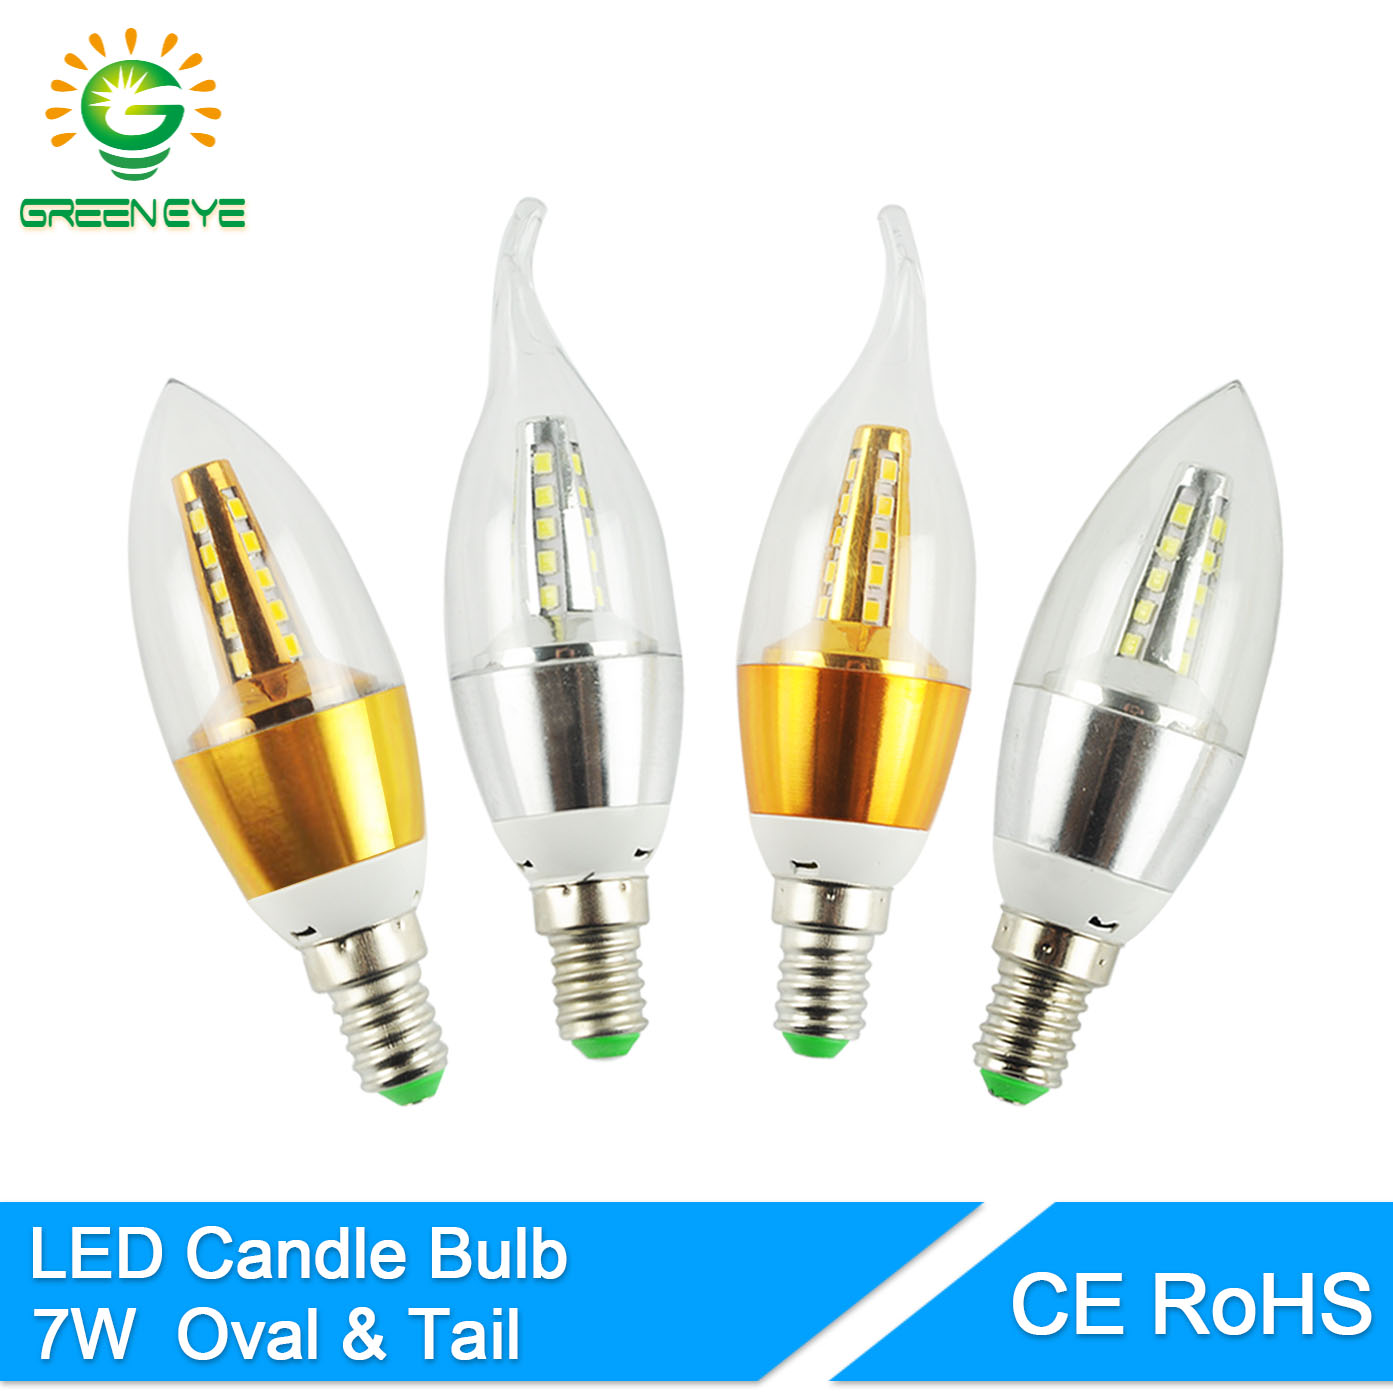 GreenEye High Bright Velas Lampara Led E14 Candle LED Bulb 7w LED Light Lamp 220V Golden Silver Cool Warm White Ampoule 9w 12w candle led bulb e14 9w 12w aluminum shell e14 led light lamp 220v golden silver cool warm white ampoule lampara led smd 2835